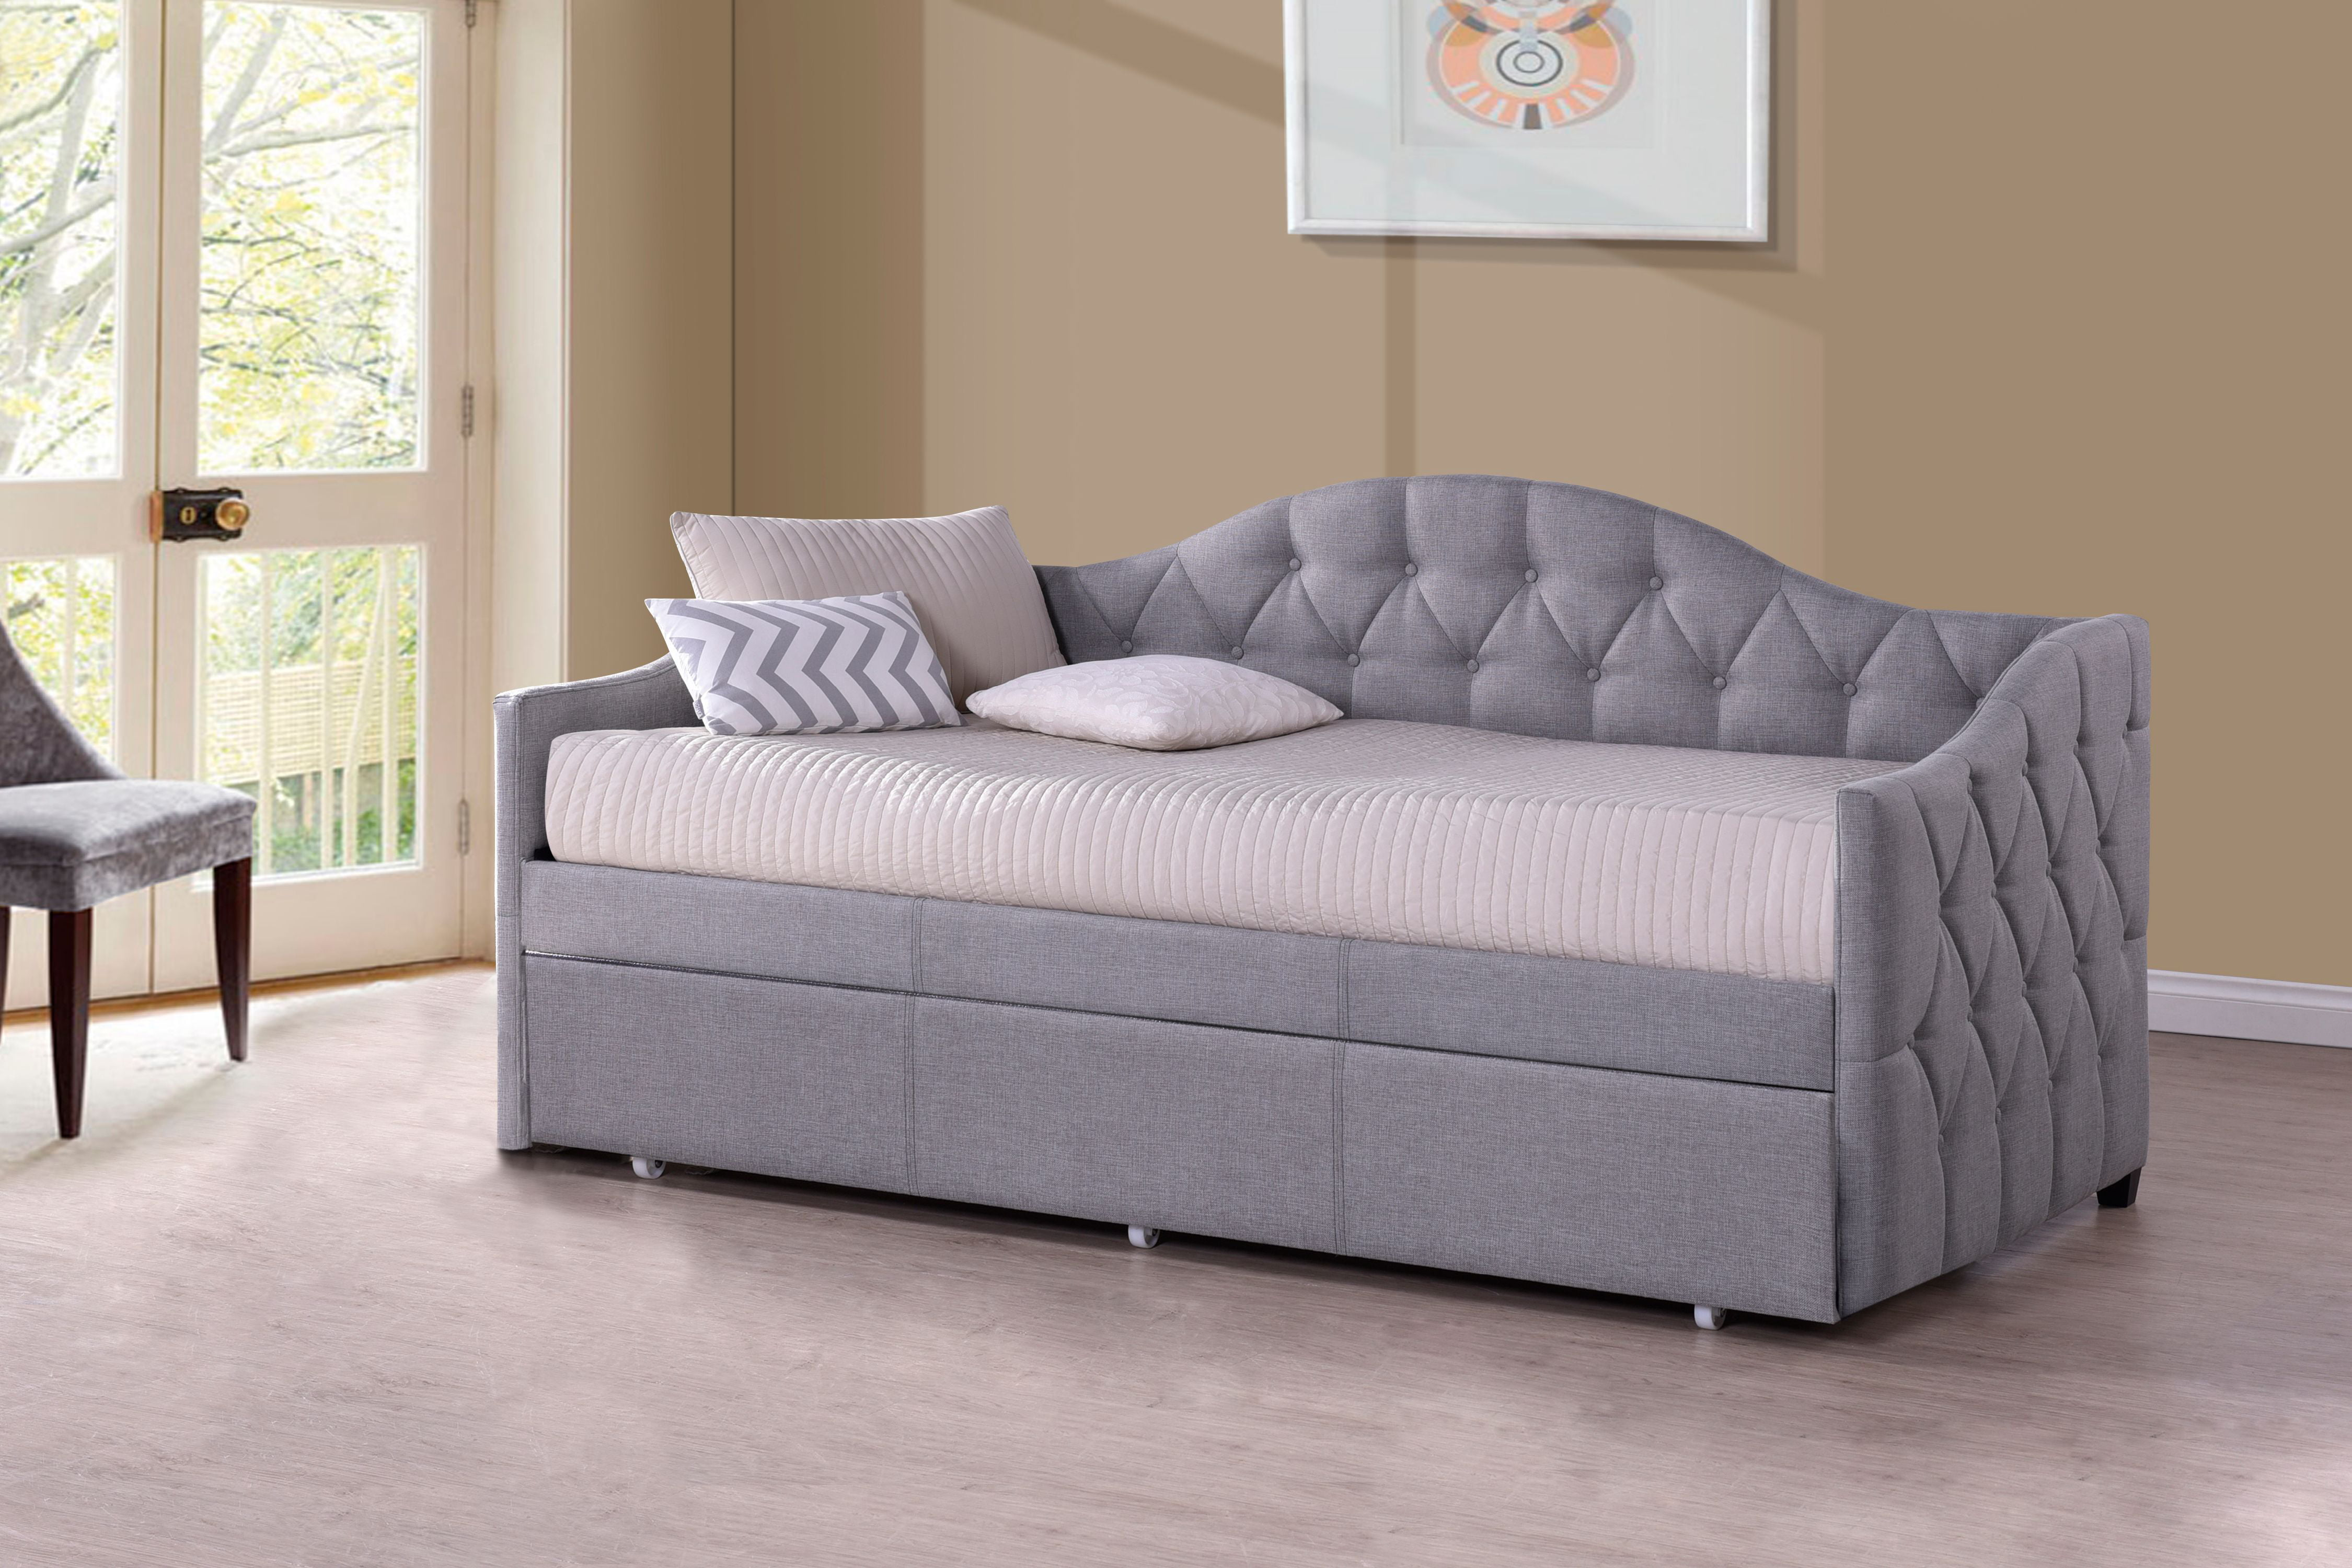 Hillsdale Furniture Jamie Daybed With Trundle, Gray   Walmart.com